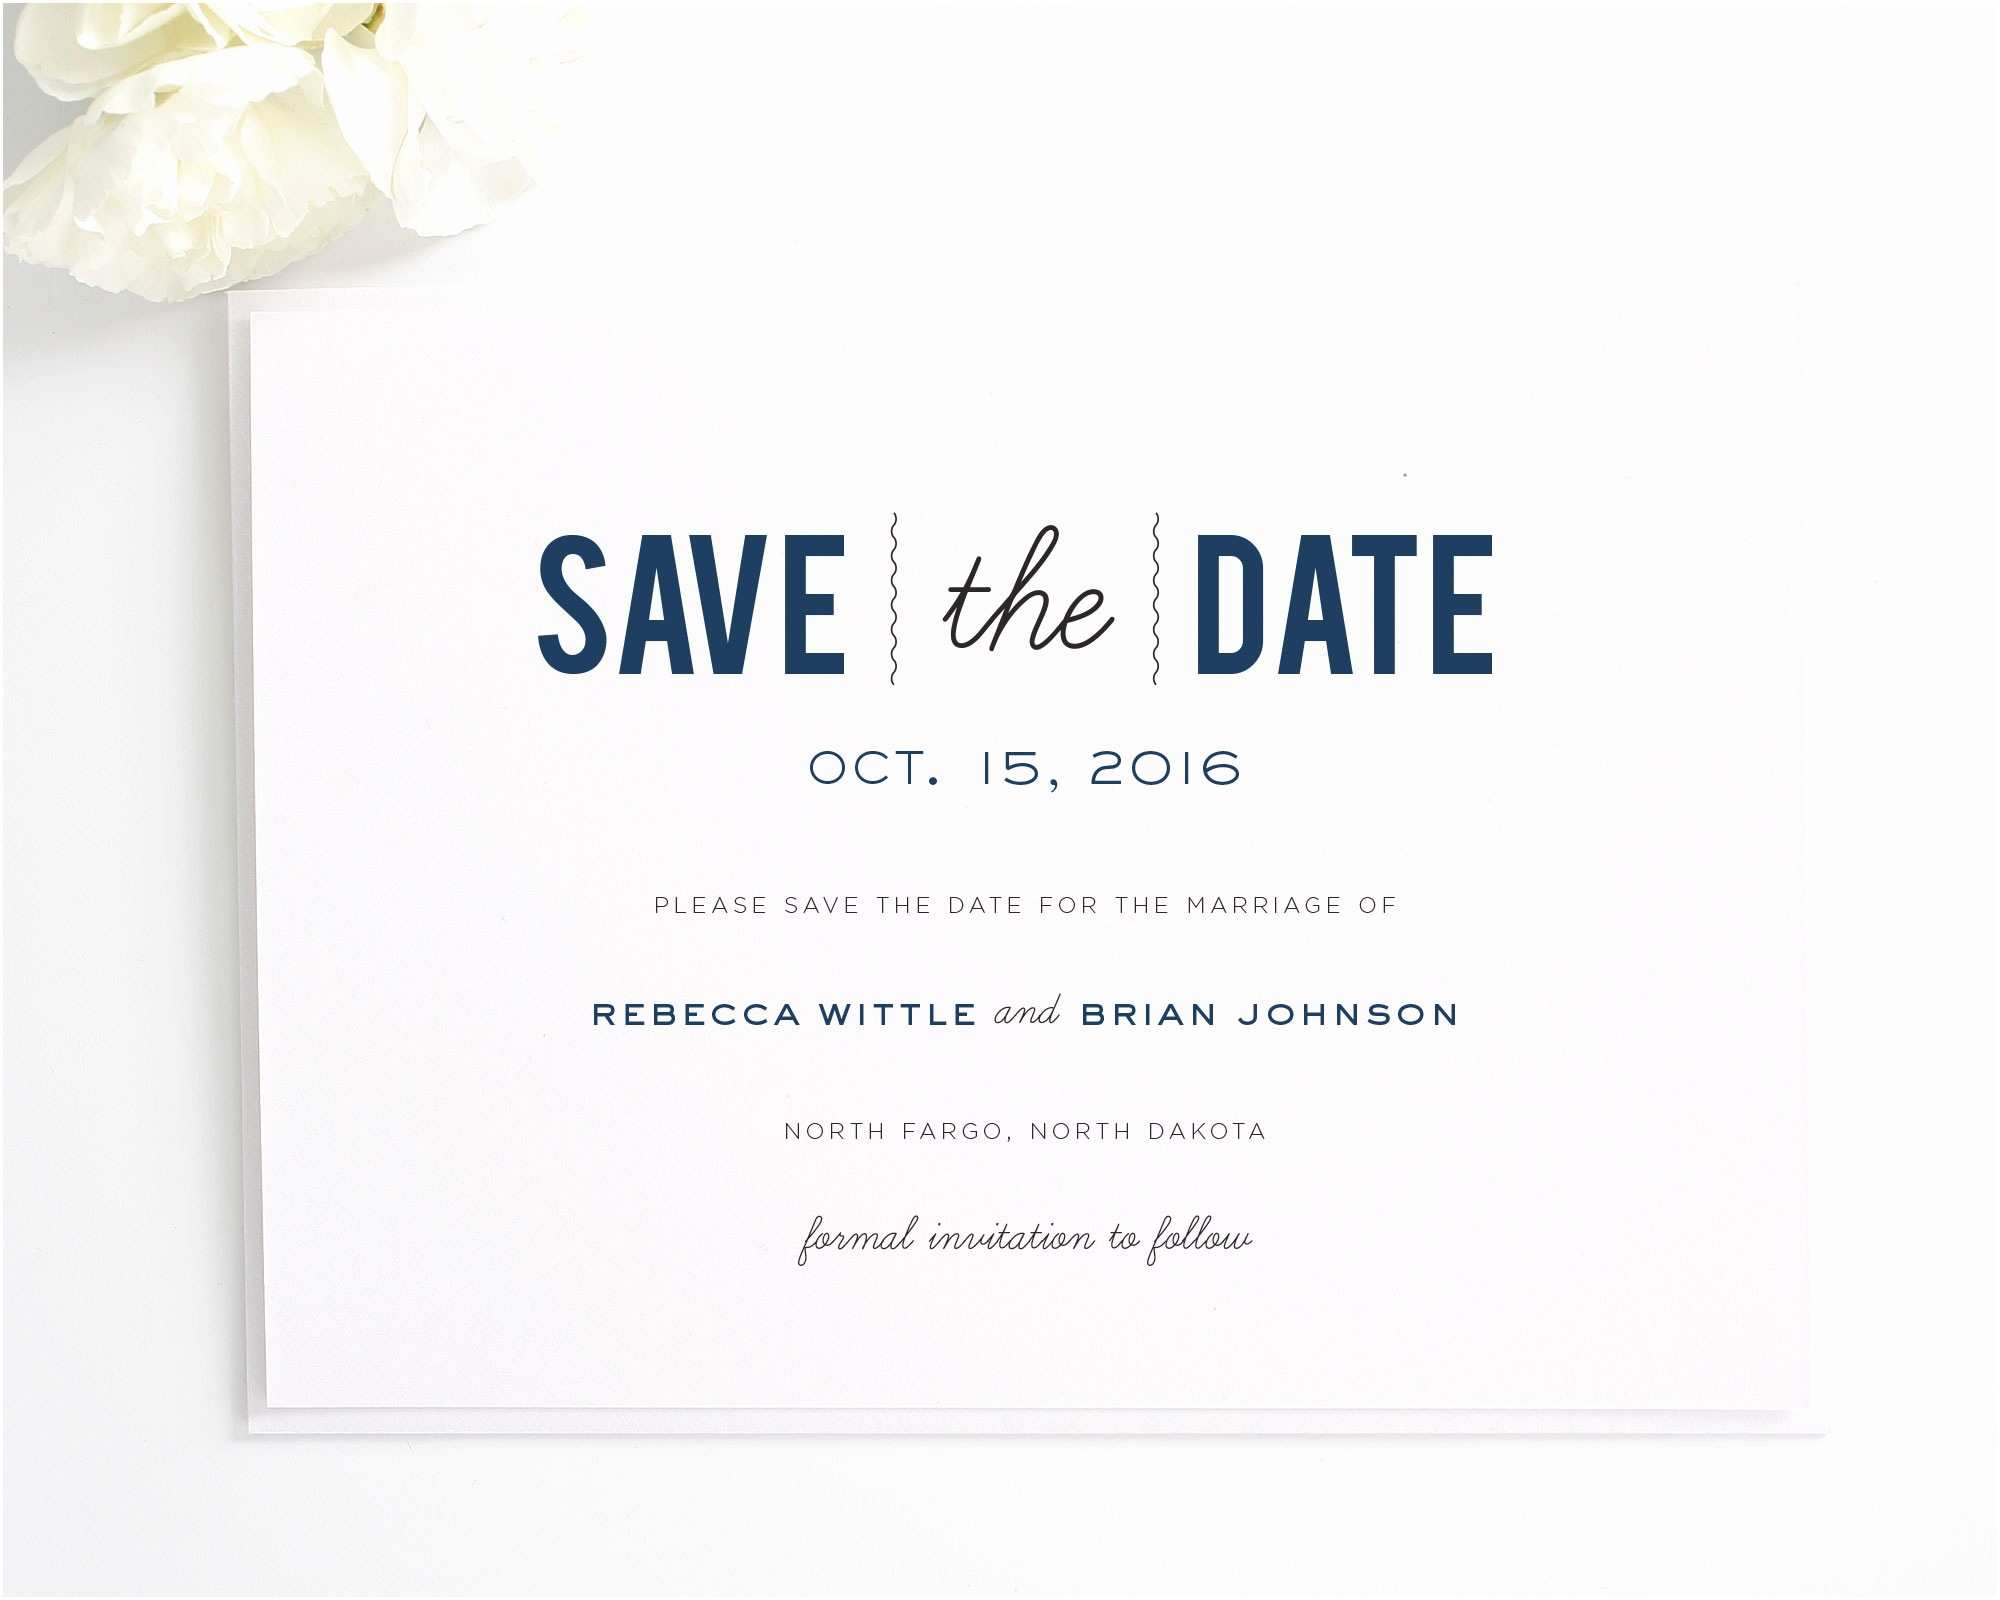 Postcard Wedding Invitations Template Save the Date Wedding Invitations Save the Date Wedding